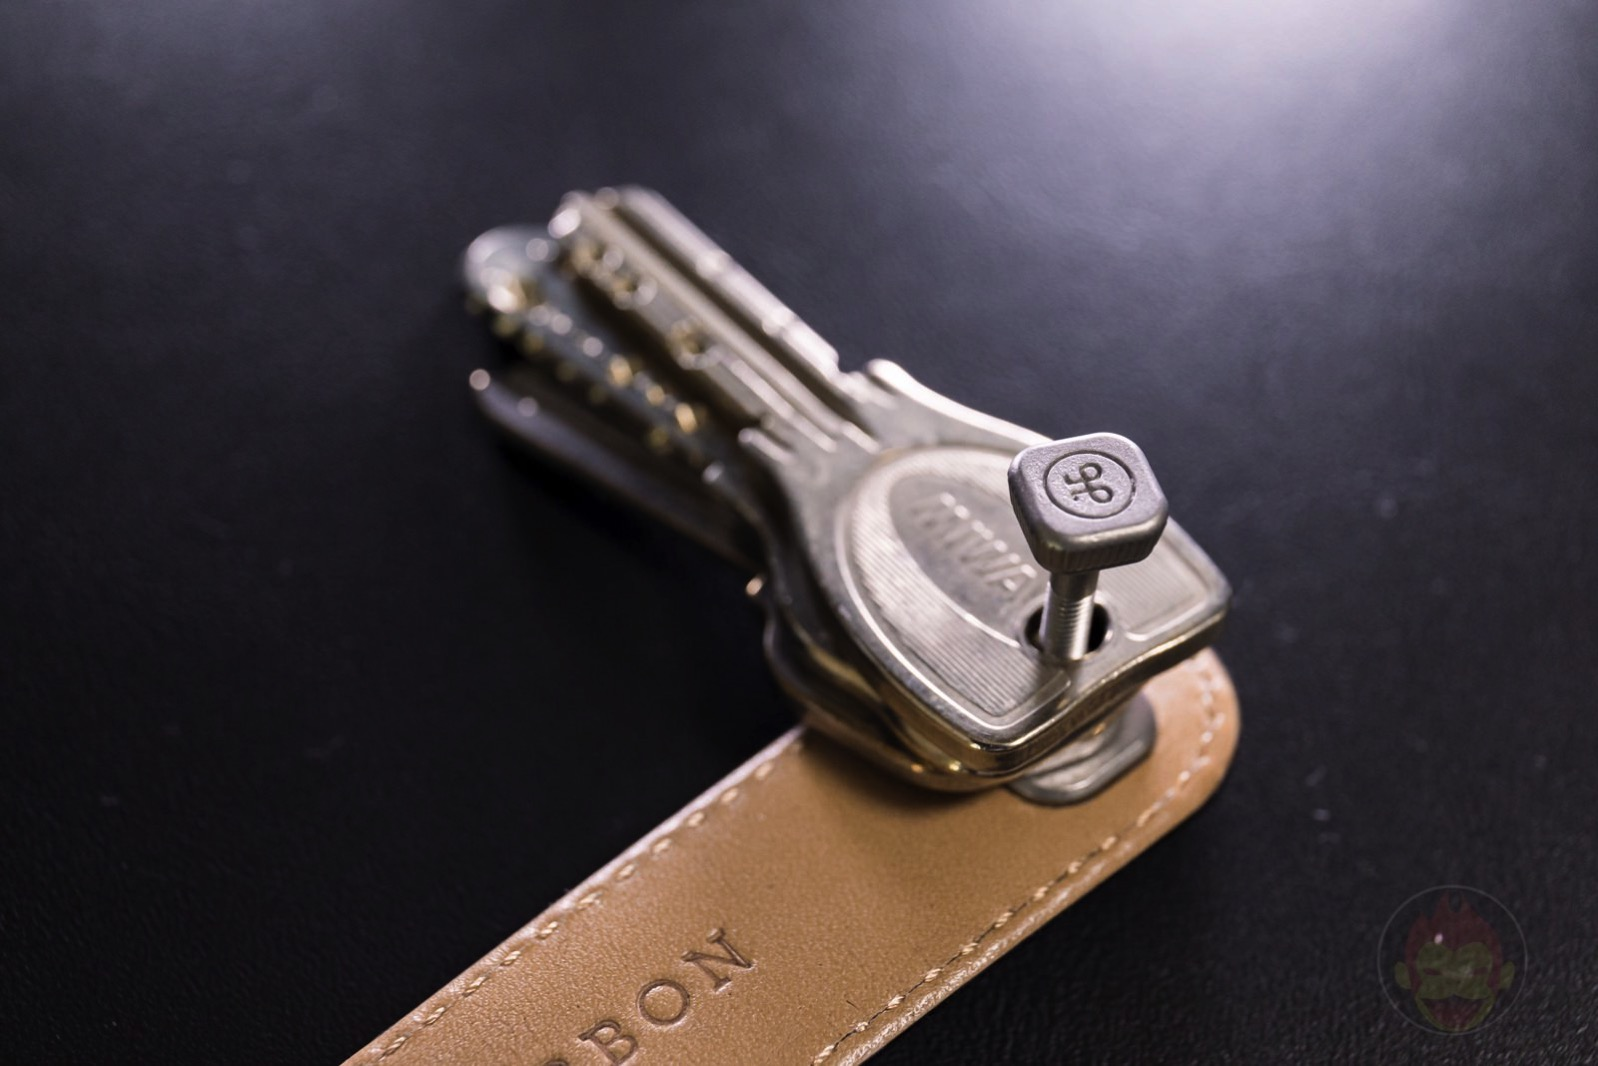 JIBBON Key case review 03